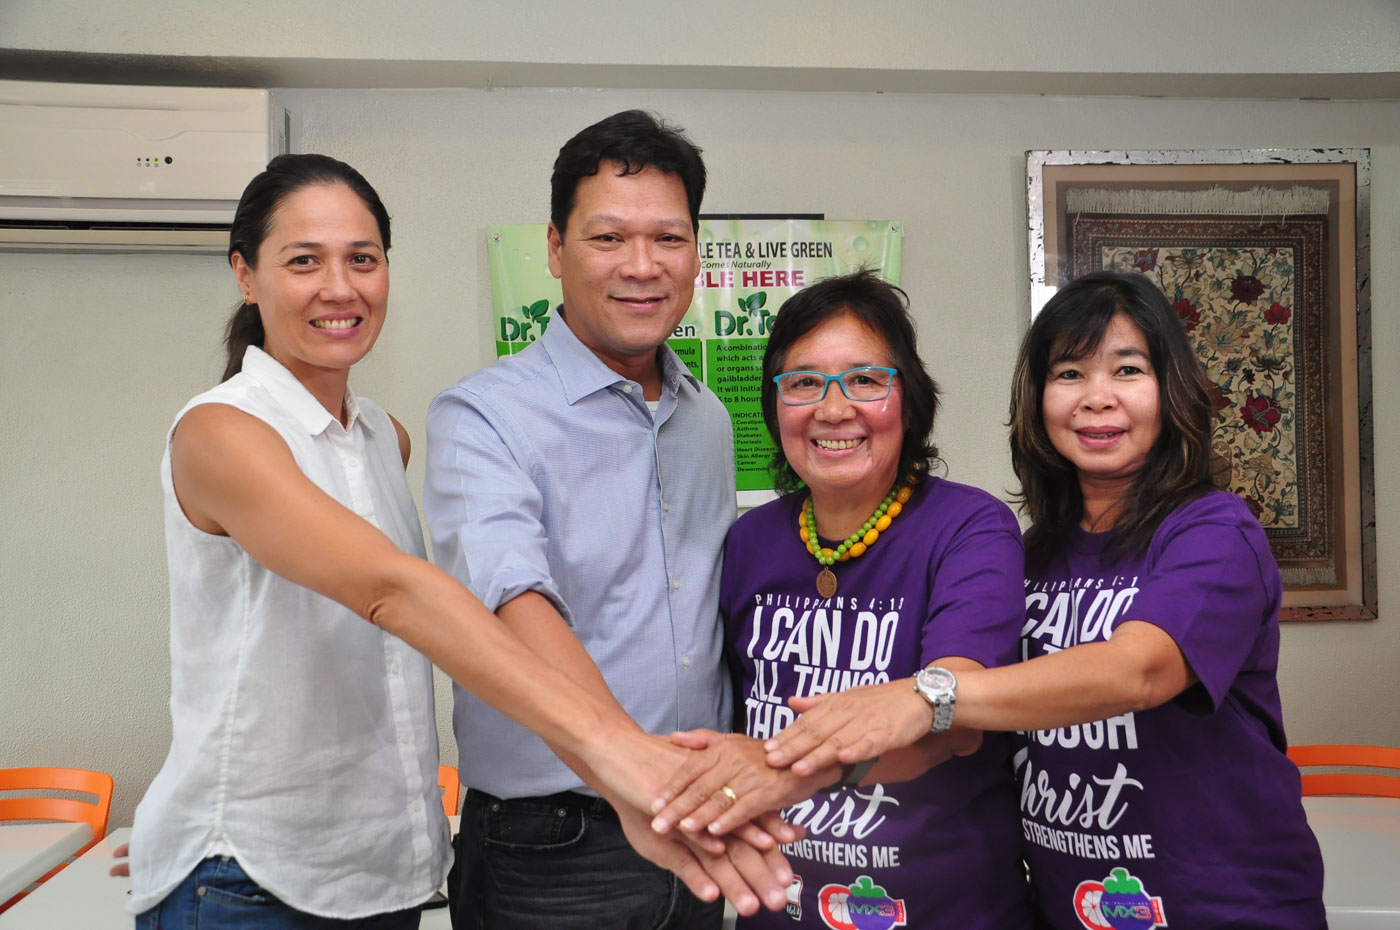 EMBATTLED. PSI and PSL finally team up together as Susan Papa puts her trust in Ral Rosario. Photo by First Tier Media